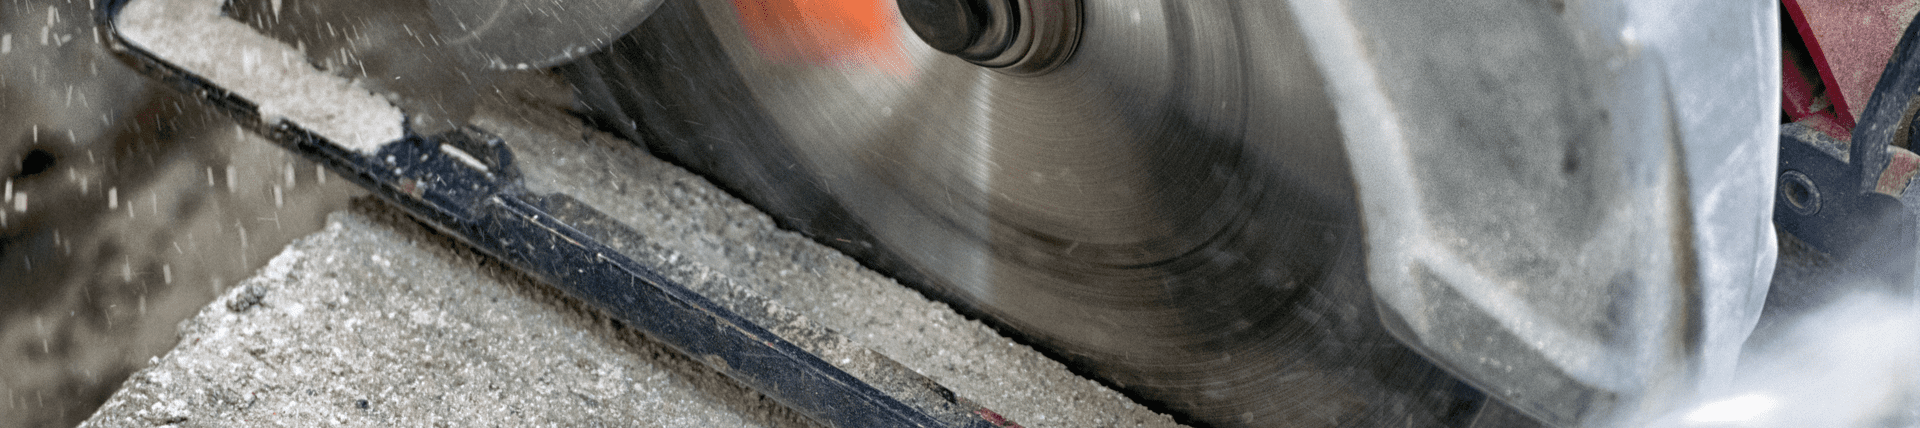 New Crystalline Silica Dust Rule By OSHA Now in Effect/2018